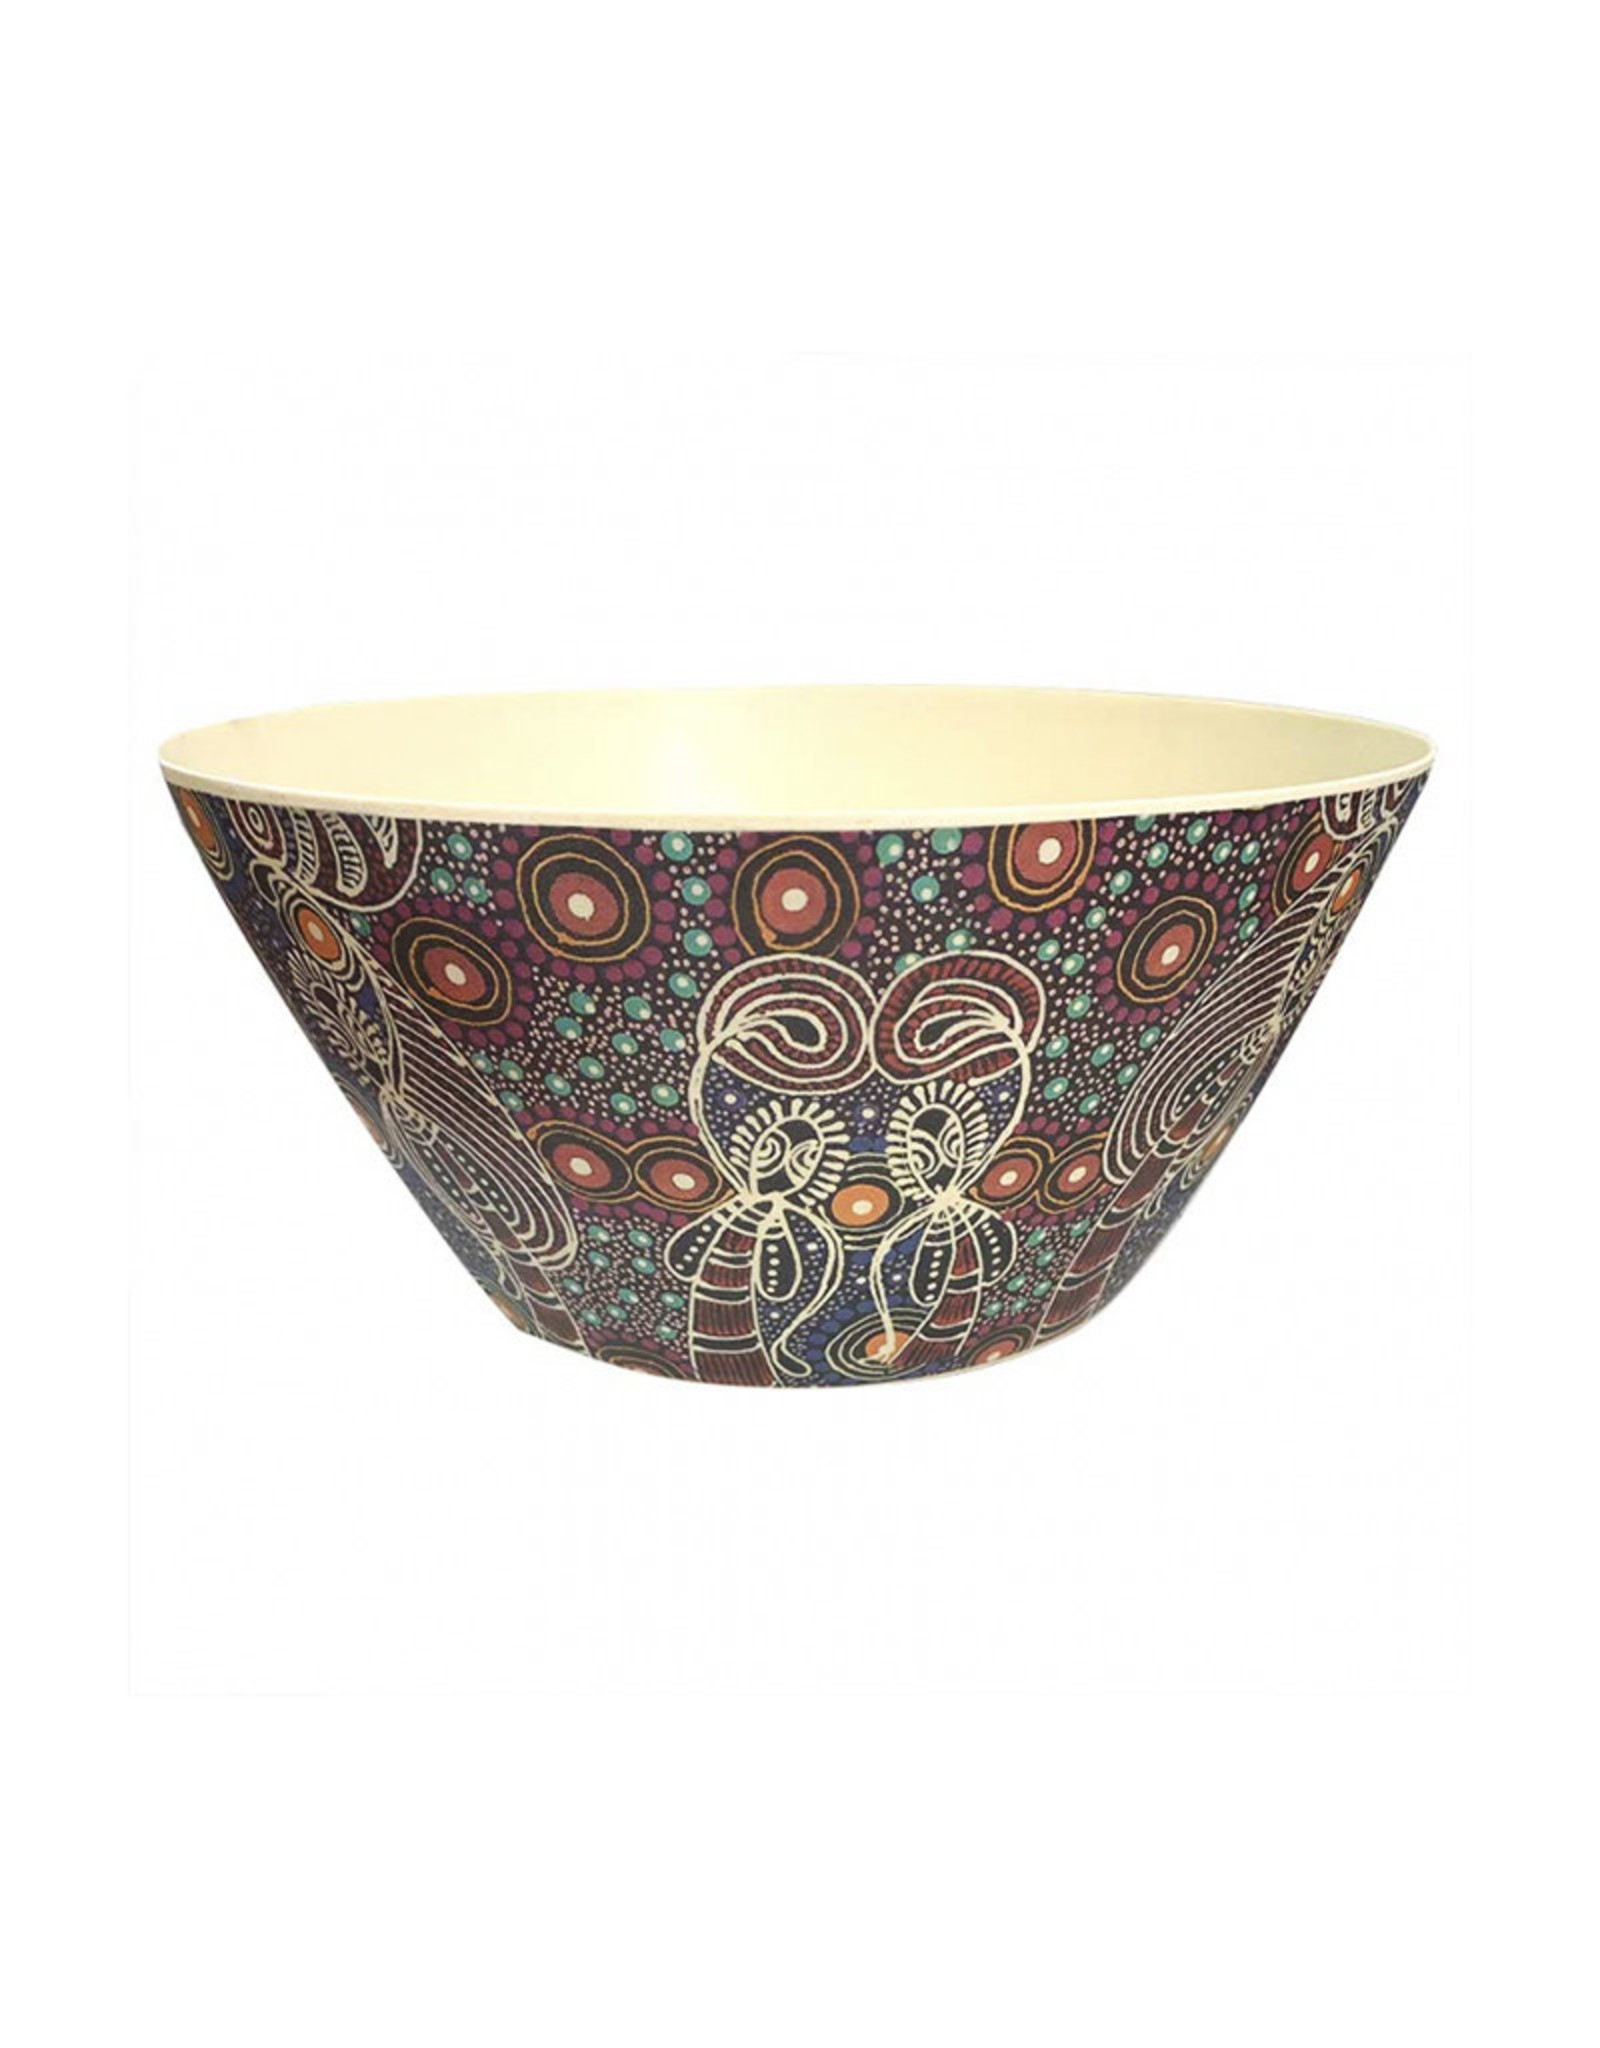 Utopia Large Bamboo Salad Bowl - Colleen Wallace